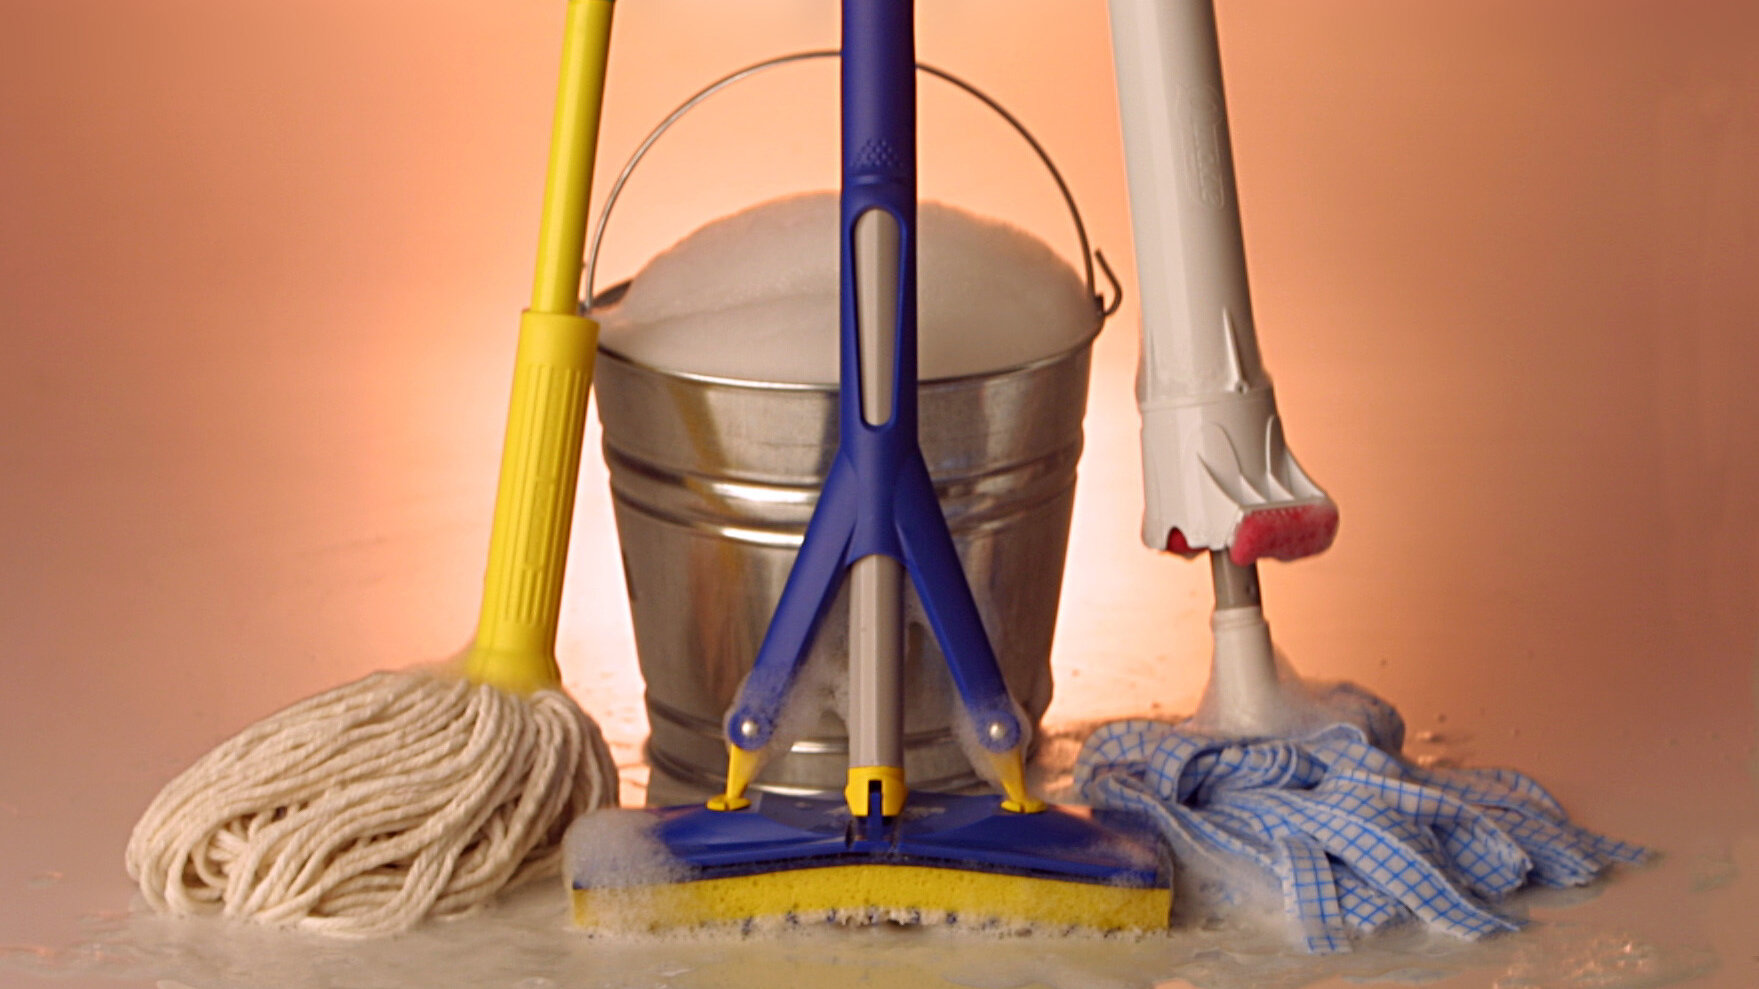 Things To Clean In Your Home